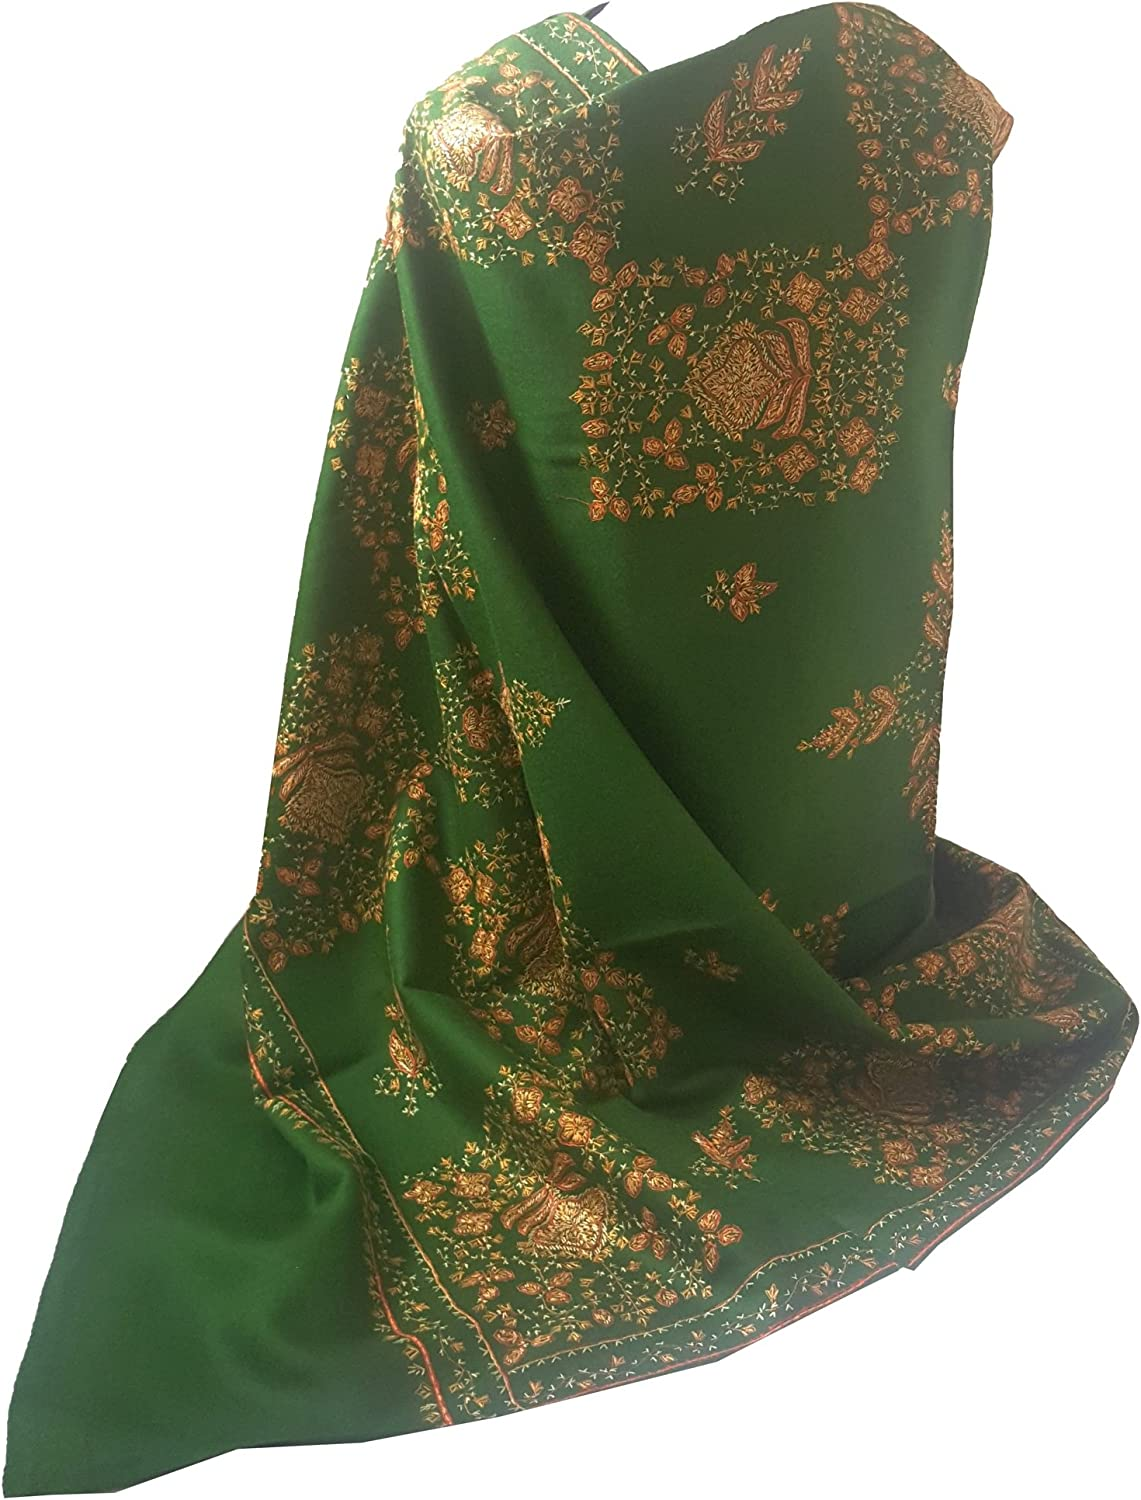 World of Shawls Exclusive Women's Ladies Needle Thread Work Hand Embroidered Shawl Scarf Wrap Occasion Bridal Party Wear Prom